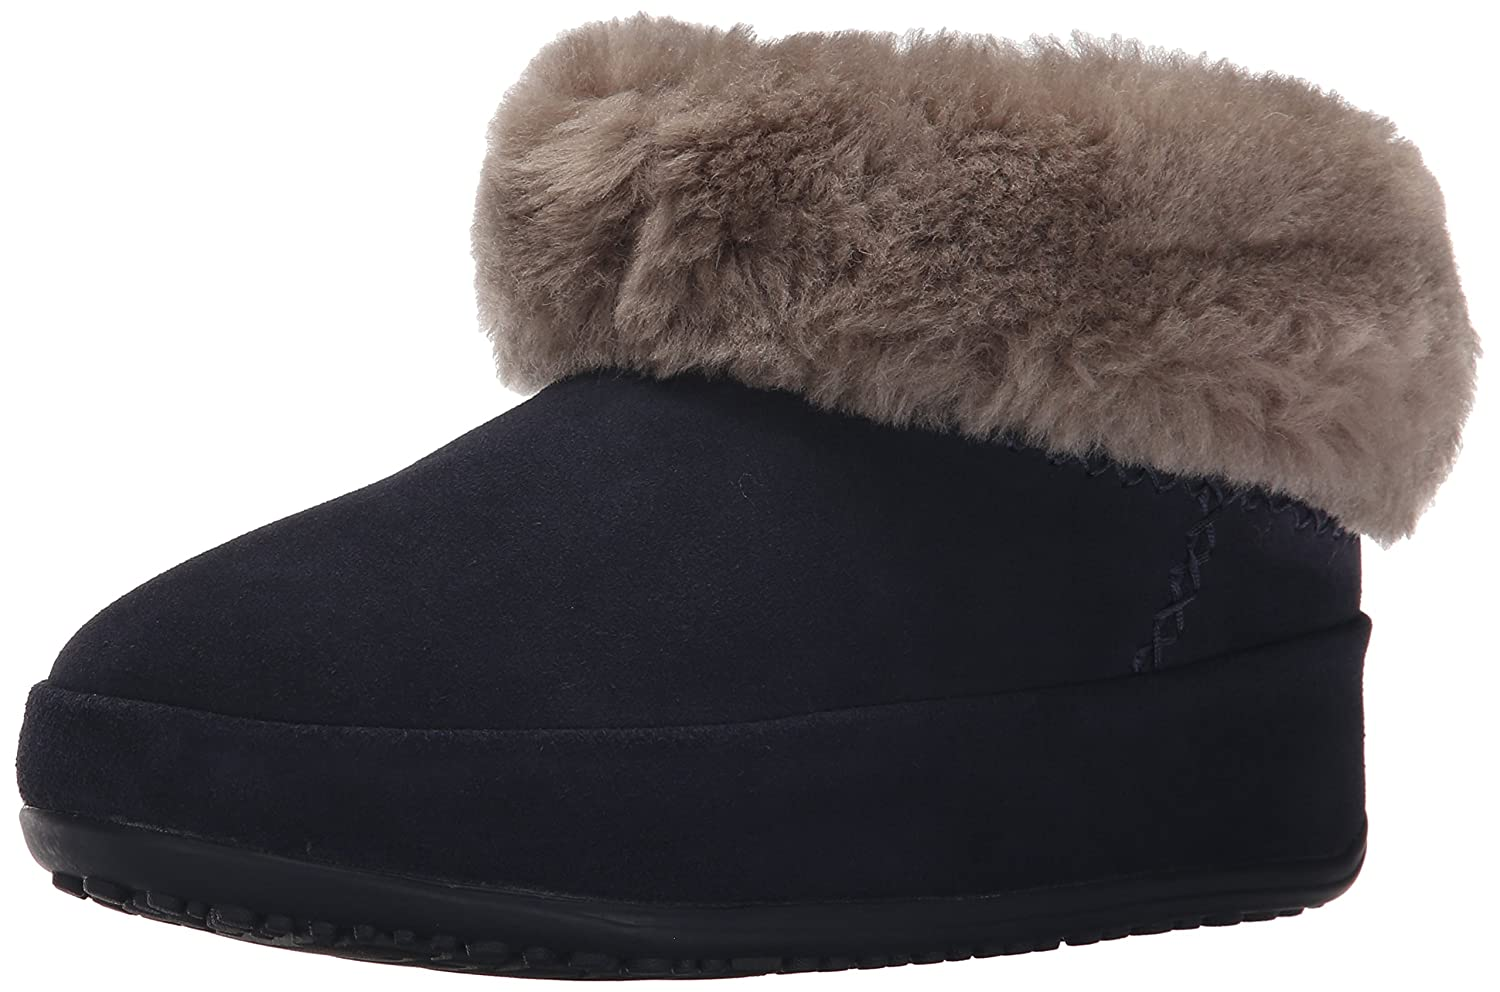 013d4844bd7 Fitflop Women s Mukluk Shorty Mocassins Boots